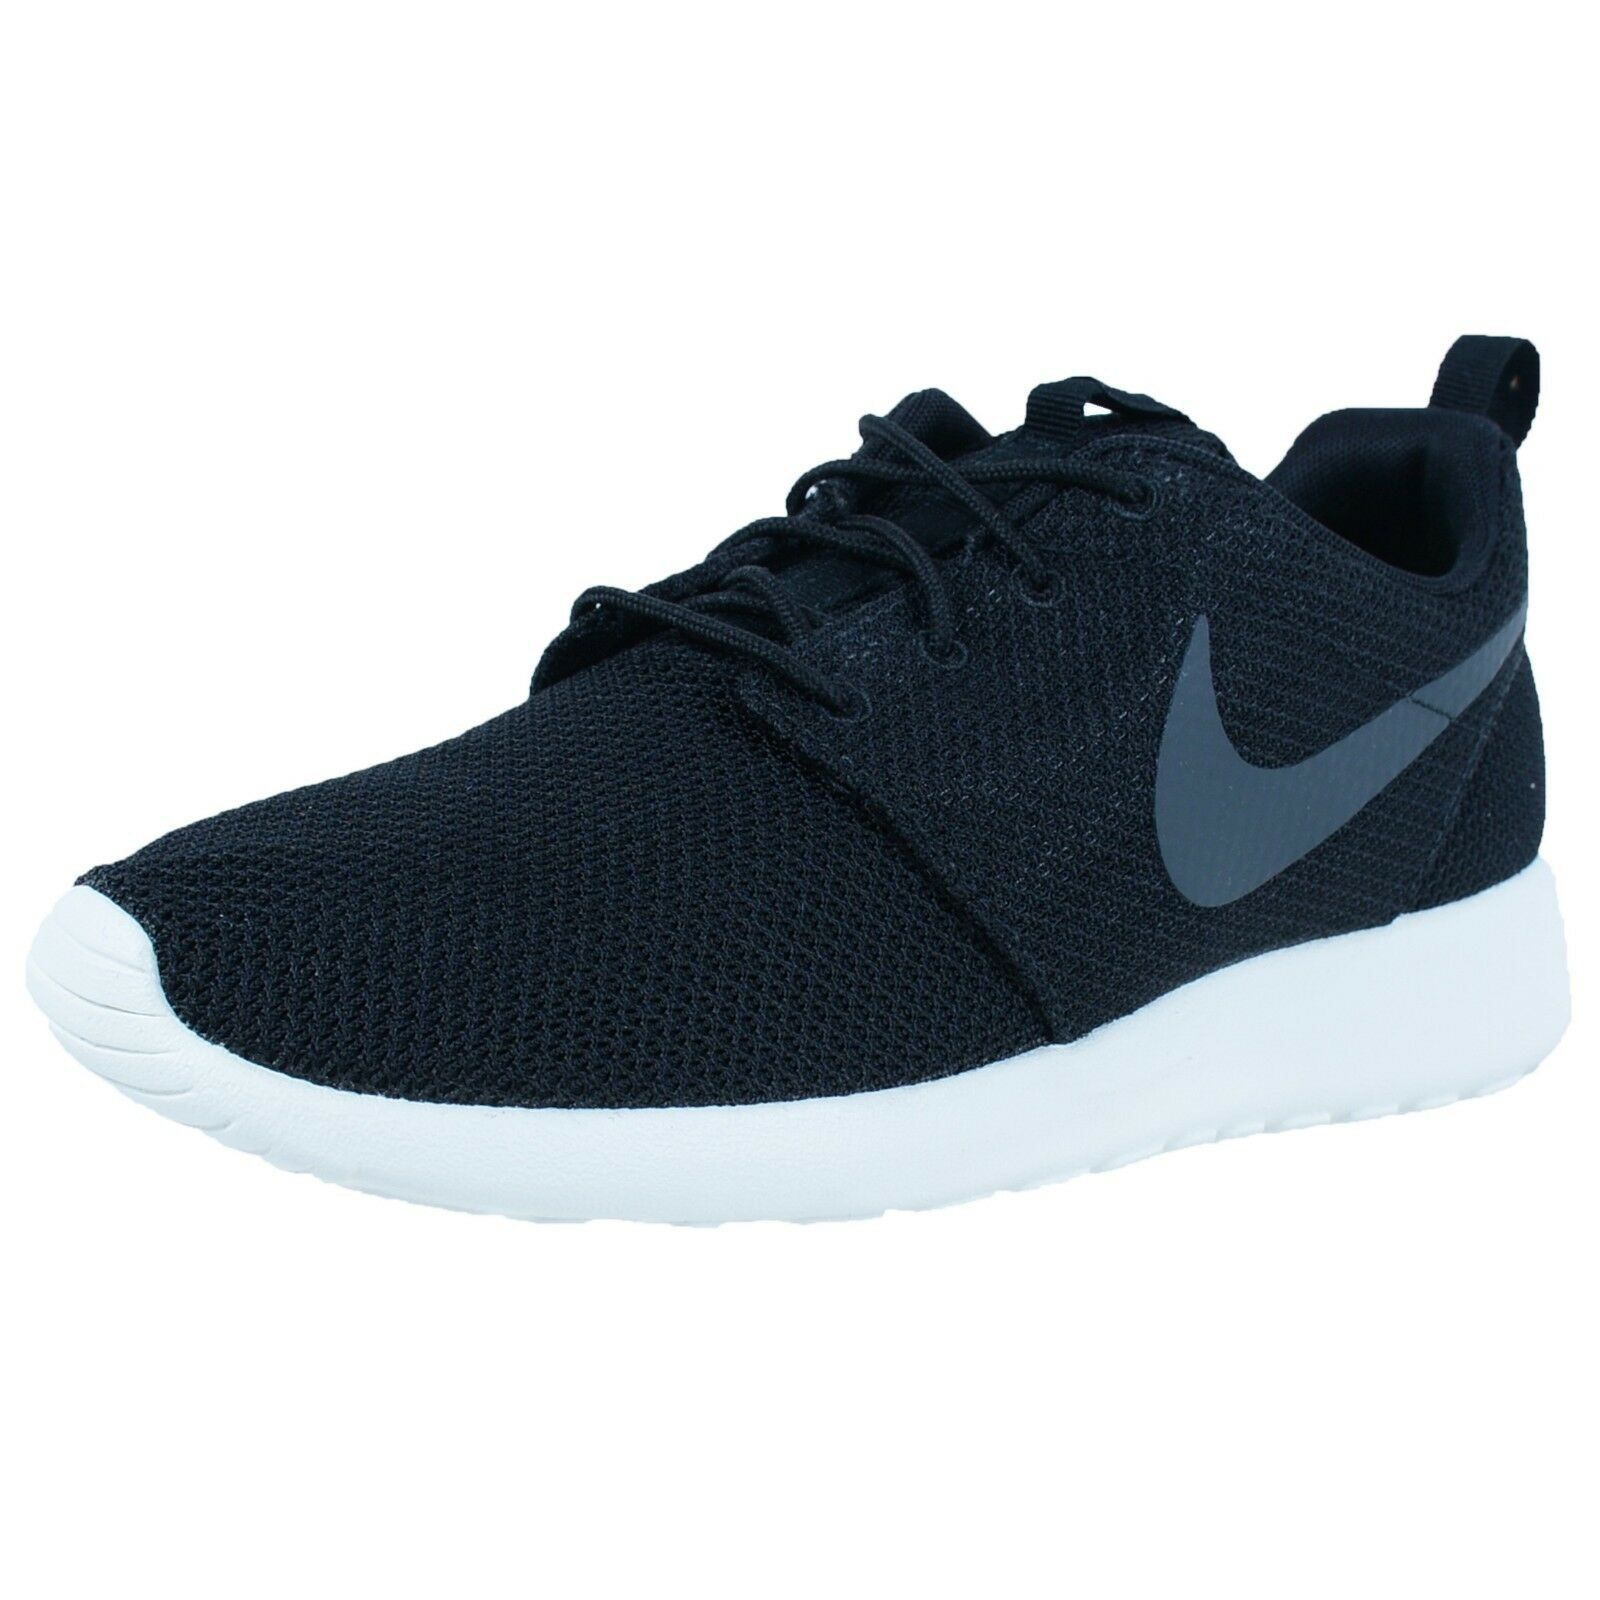 NIKE ROSHE ONE CASUAL SHOES BLACK ANTHRACITE SAIL 511881 010